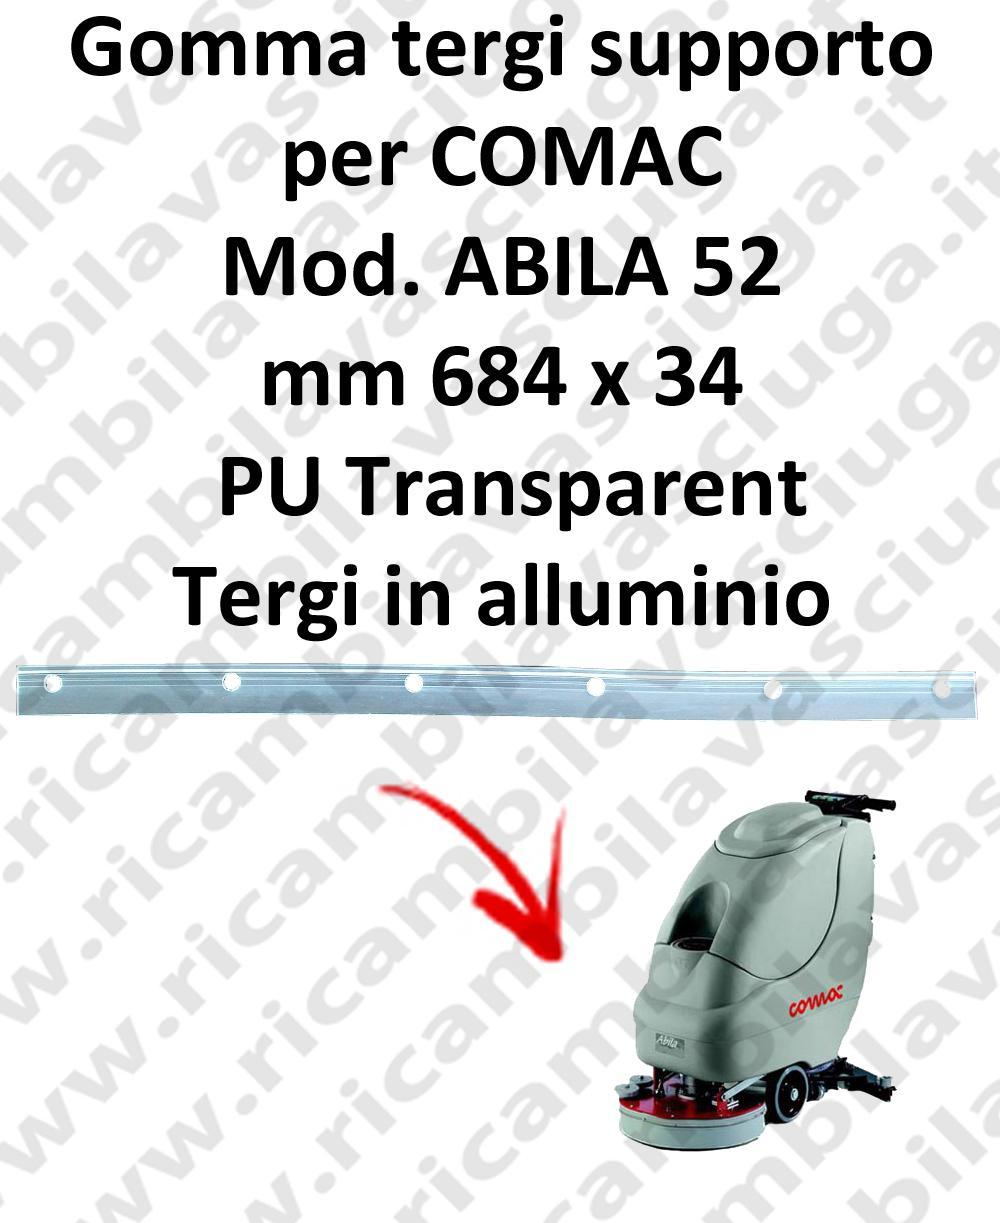 ABILA 52 Support Squeegee rubber for COMAC accessories, reaplacement, spare parts,o scrubber dryer squeegee